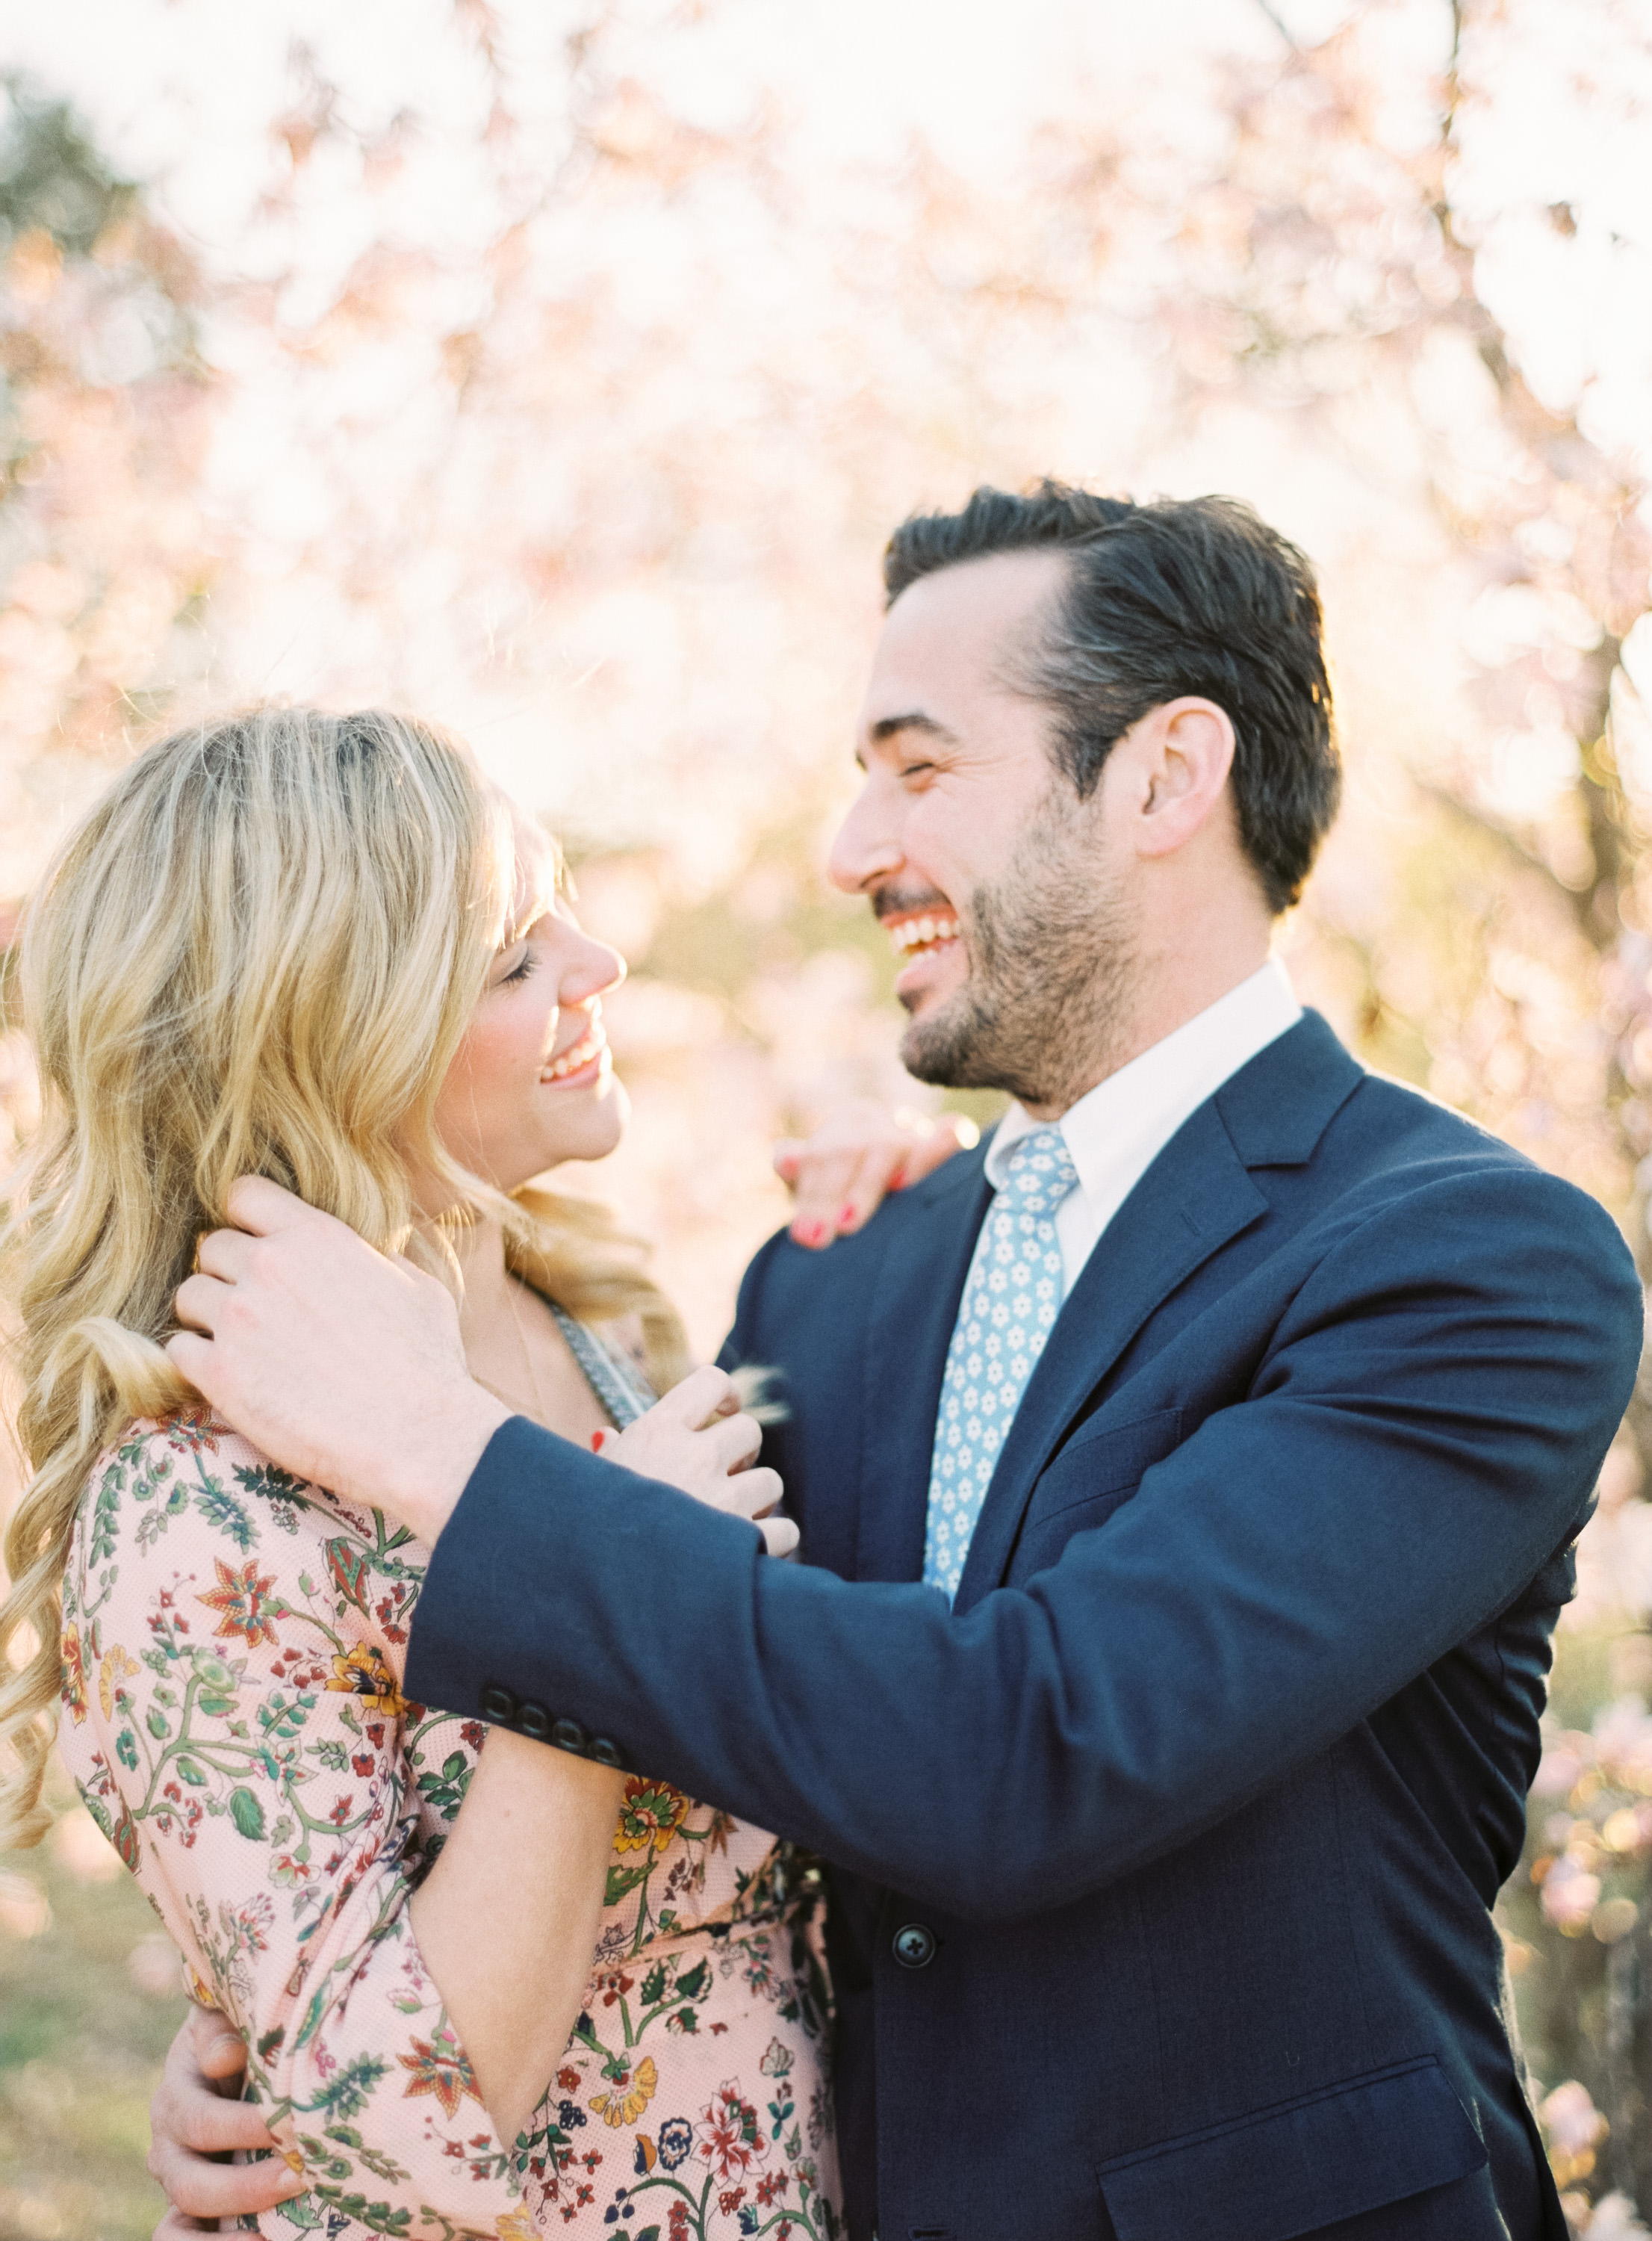 Benny & Sarah Engagement Session at Bernheim Arboretum (Web Use Only)-39.jpg